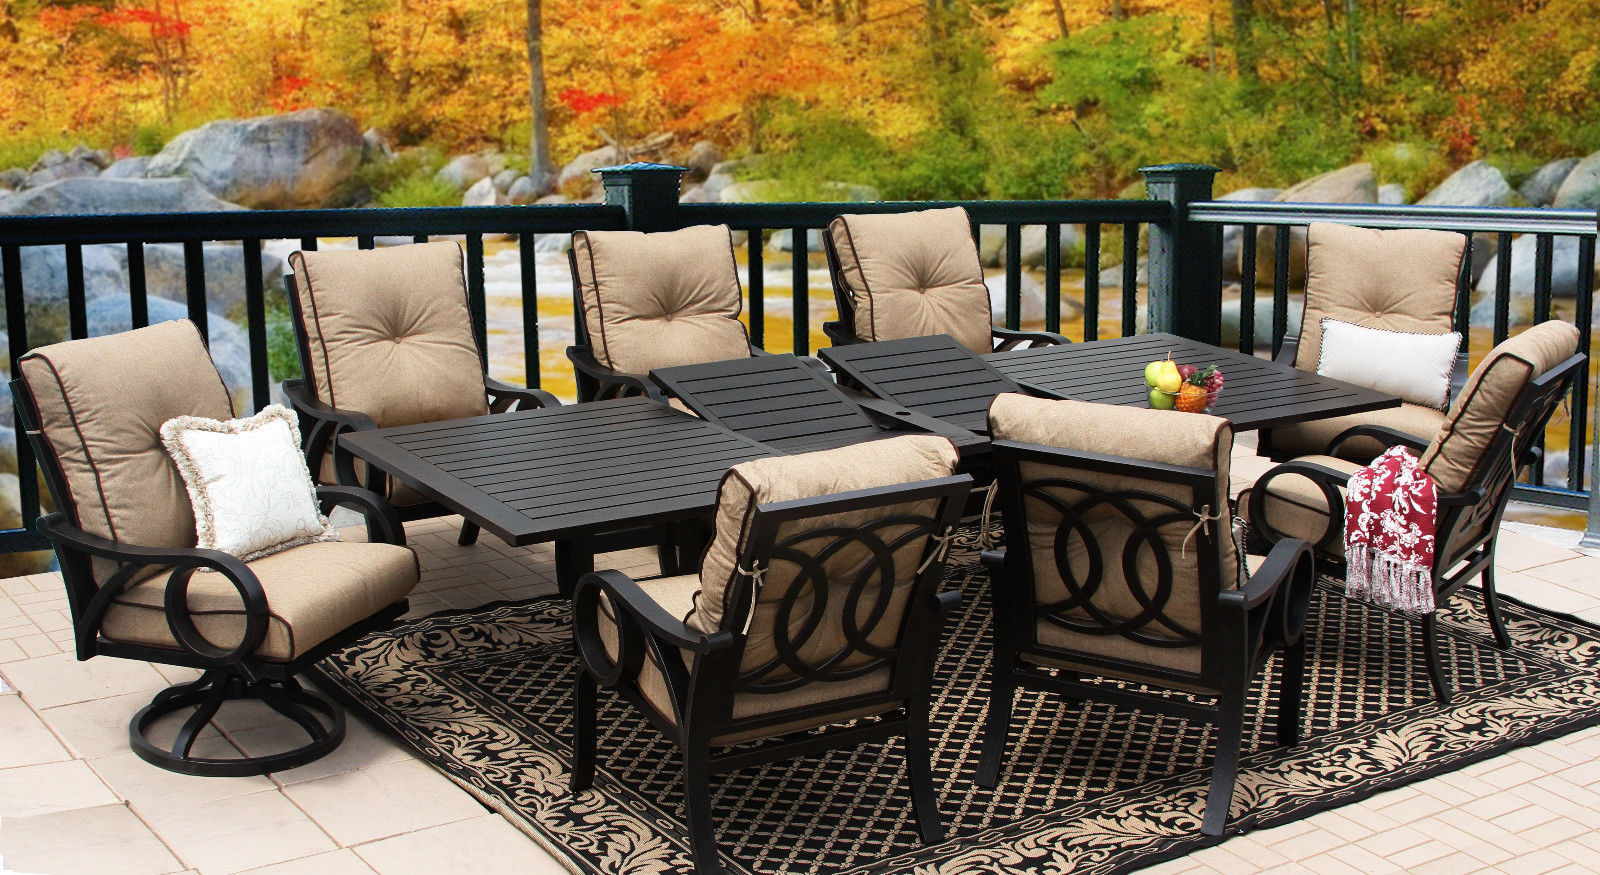 OUTDOOR PATIO 9PC DINING SET 44X130 RECT EXTEND SERIES 4000